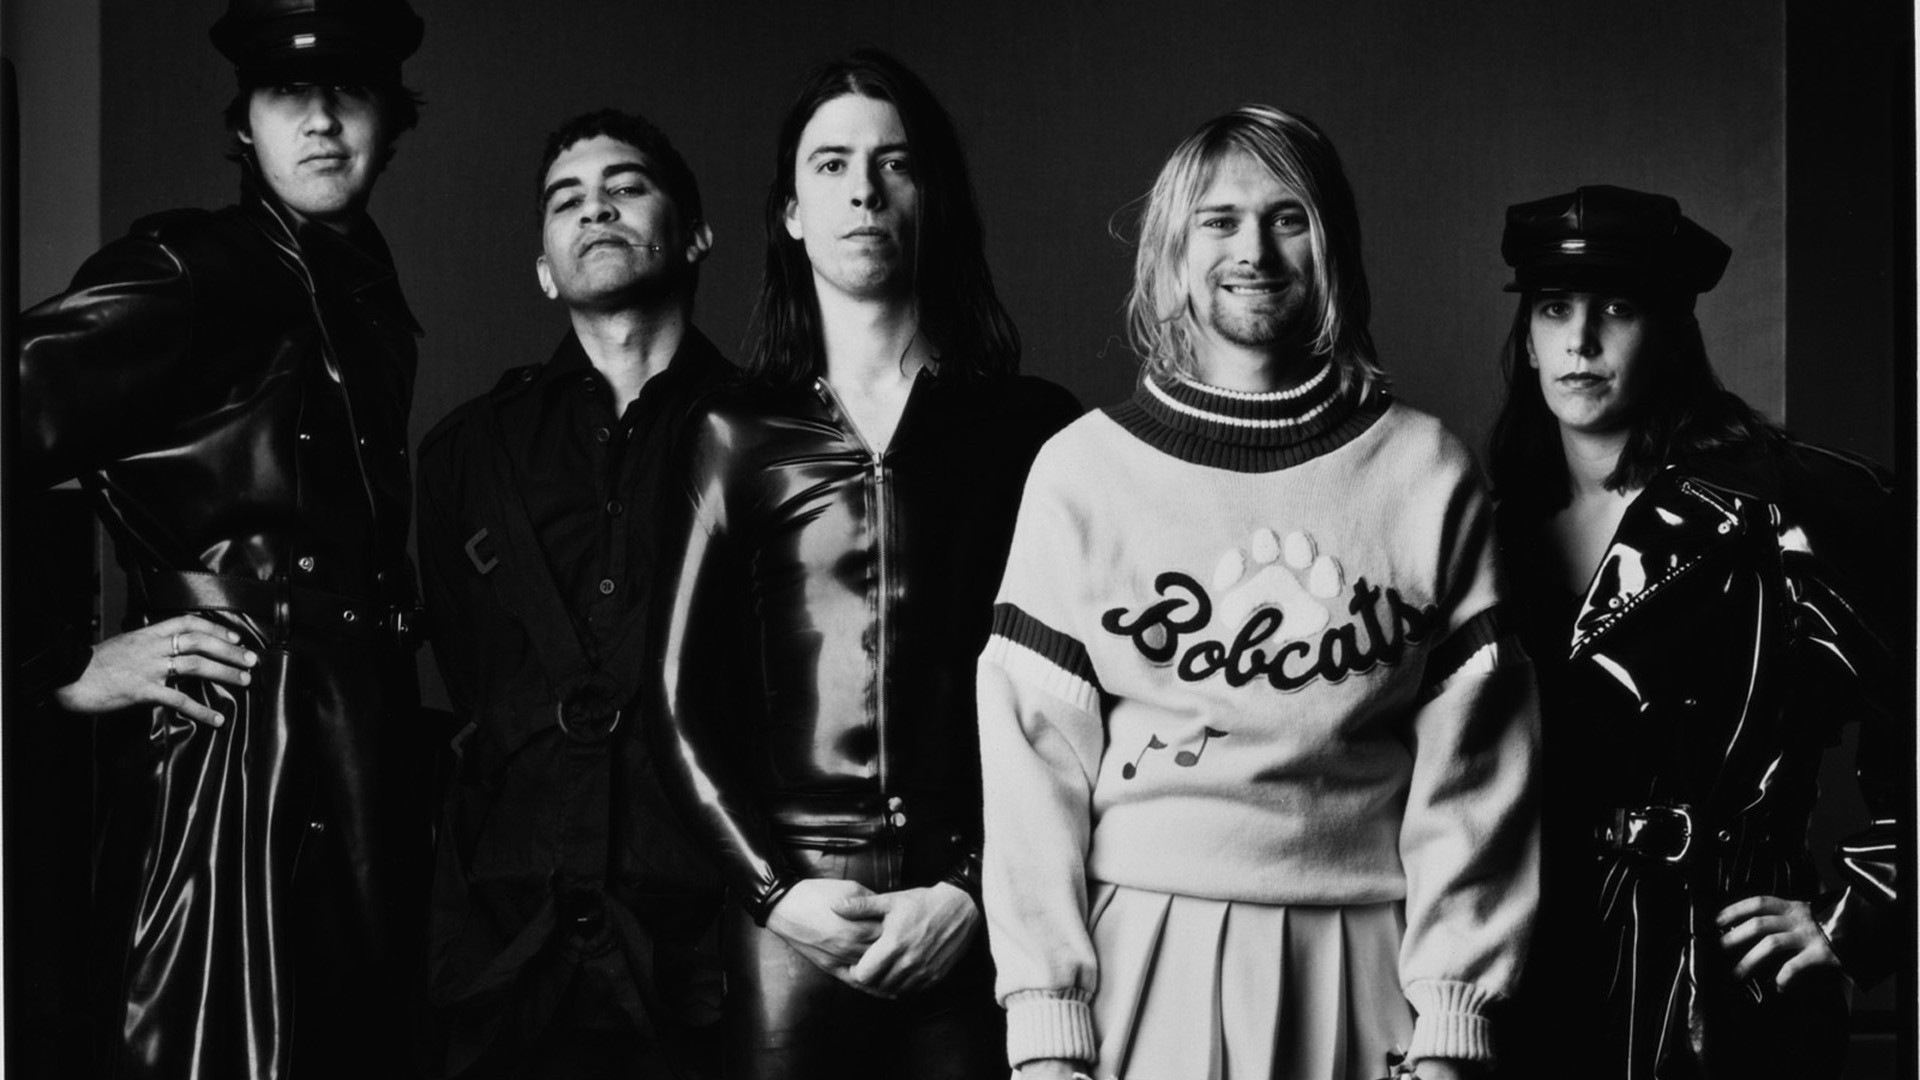 Nirvana Wallpaper 1 Download Free Stunning HD Wallpapers For